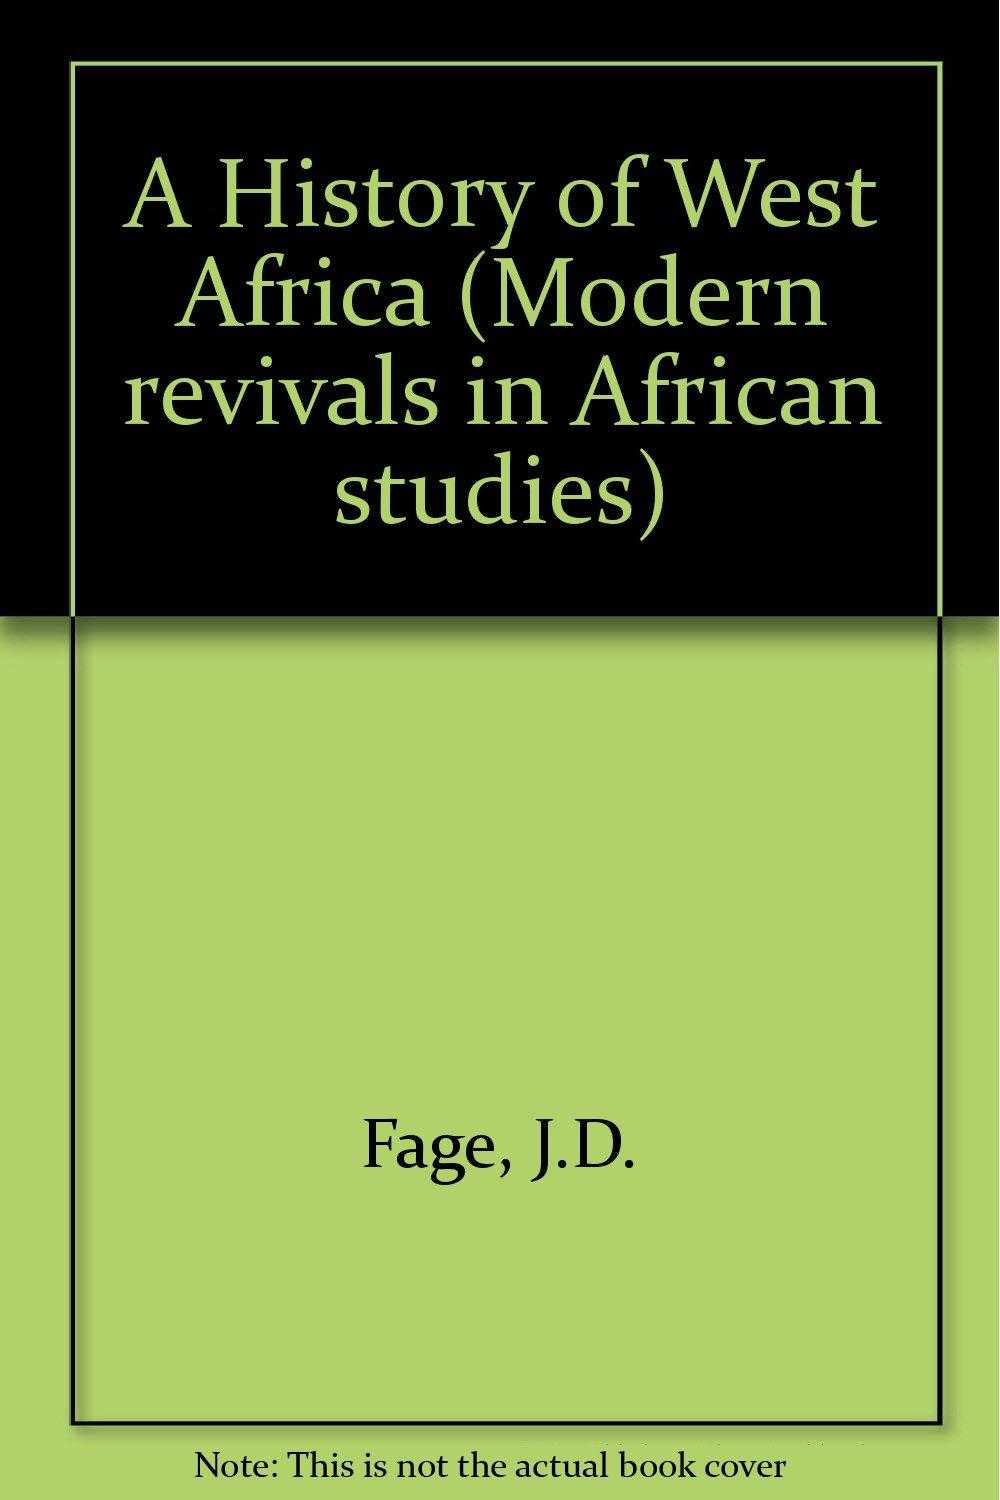 A History of West Africa : An Introductory Survey, Fage, J.D.